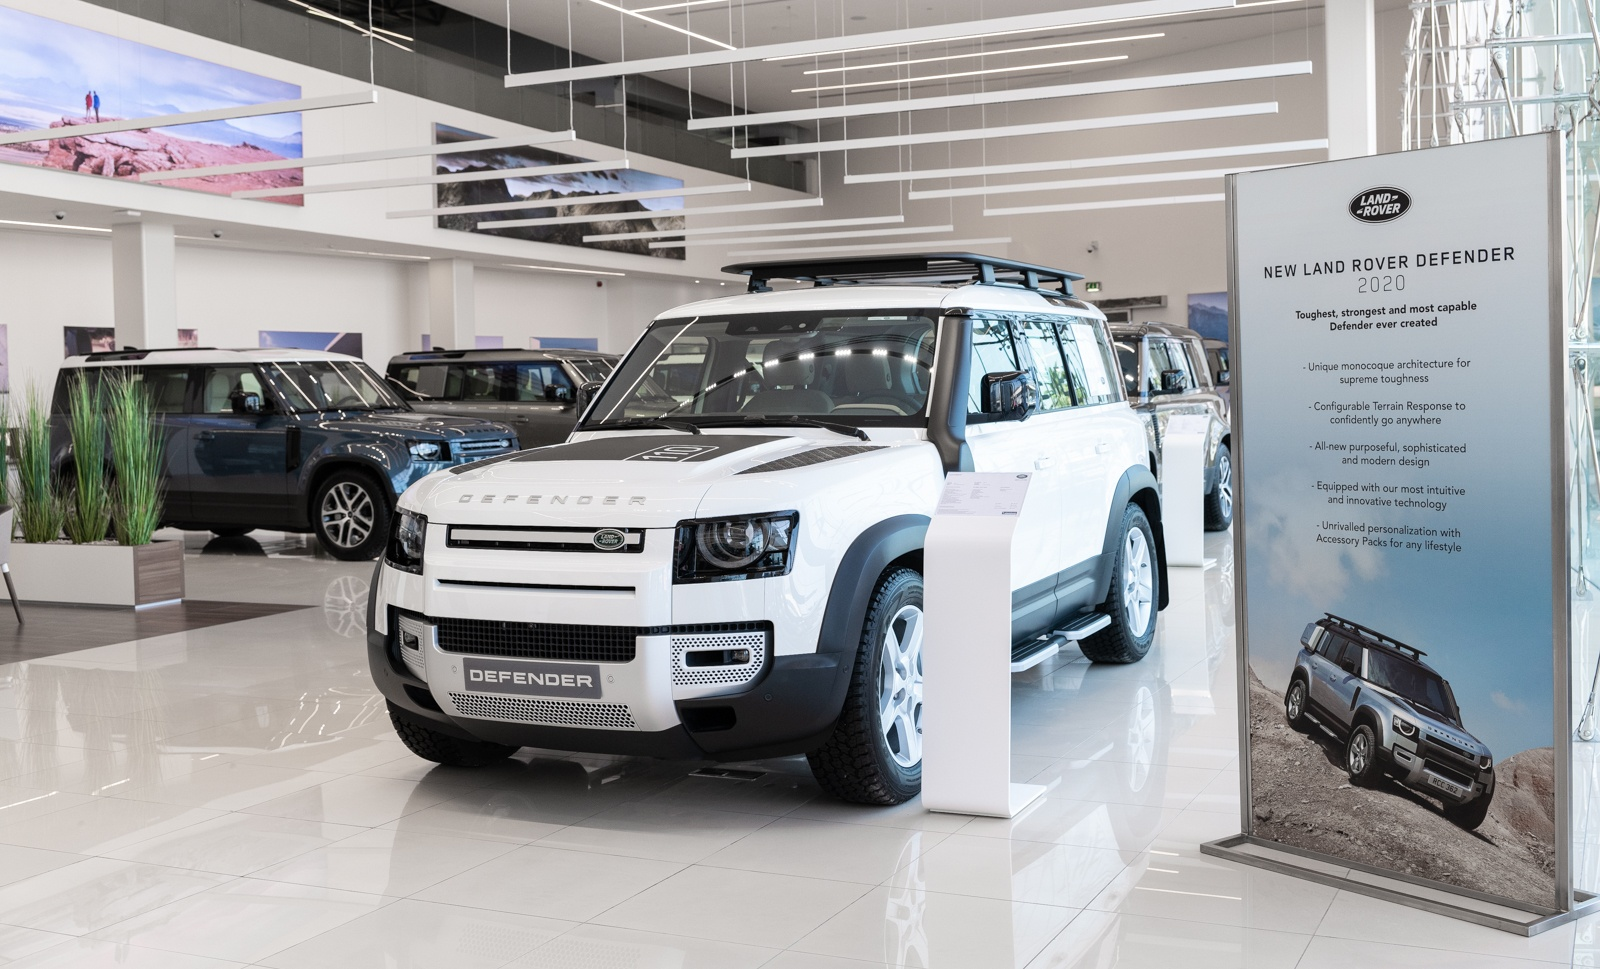 All-New Land Rover Defender arrives at Al Tayer Motors and Premier Motors showrooms in the UAE